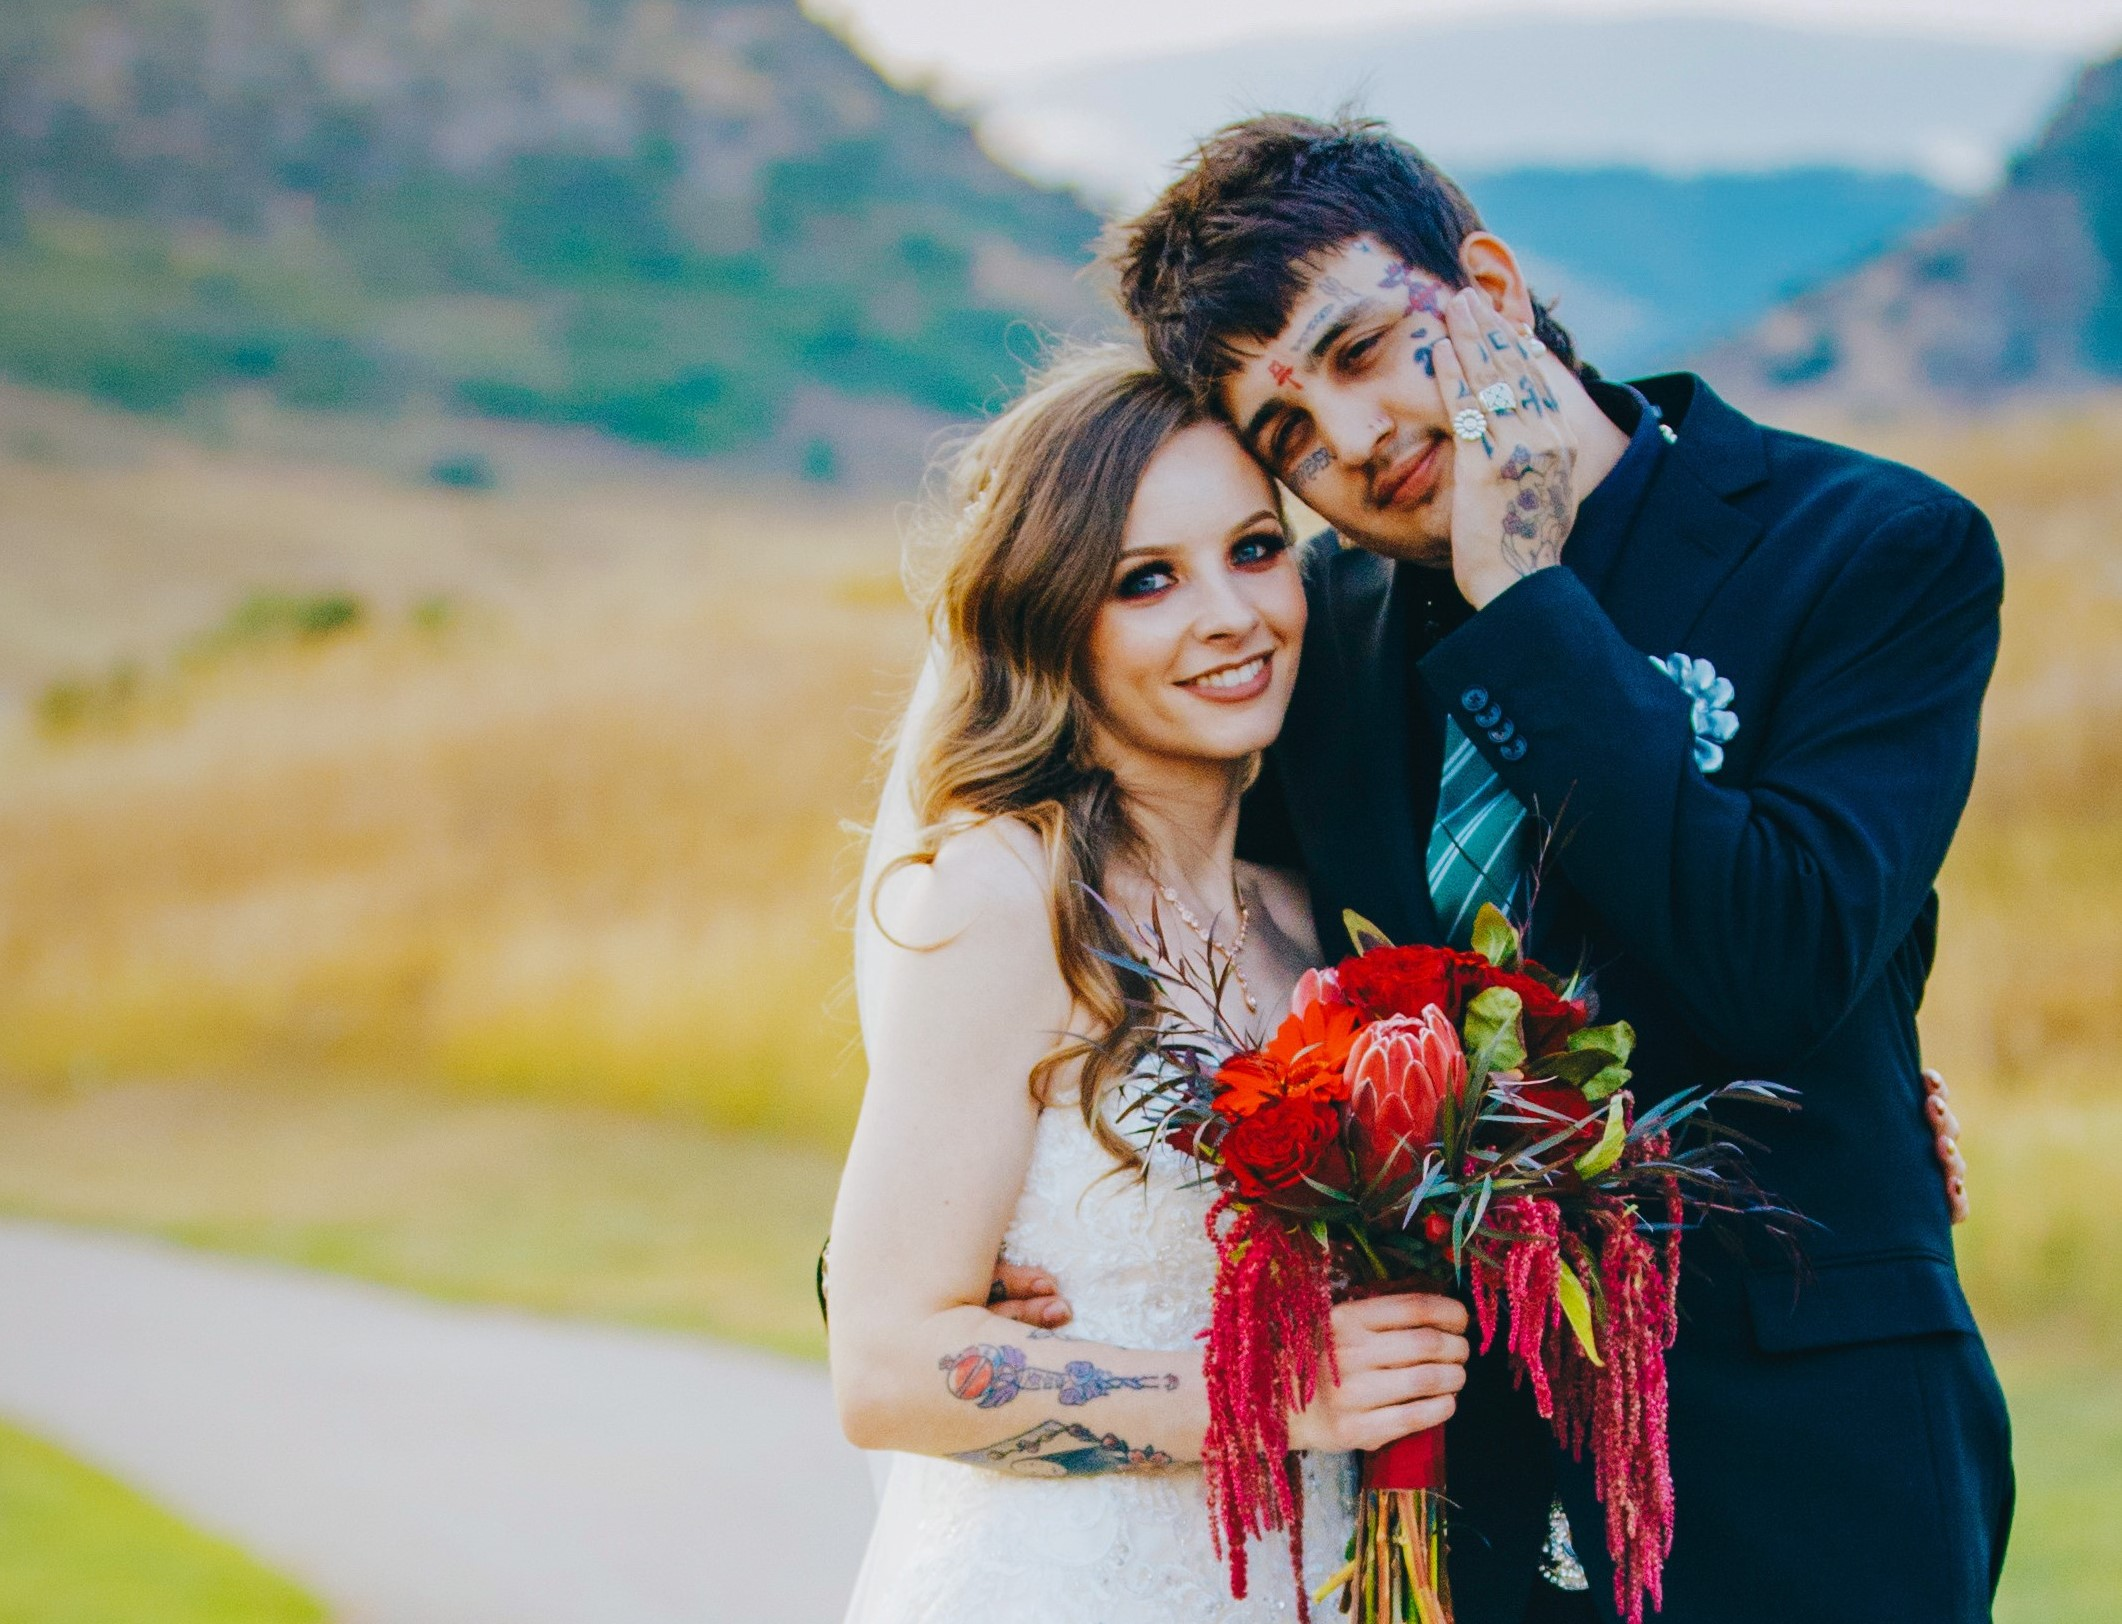 Meet Allie and Allistar at their Harry Potter themed wedding!